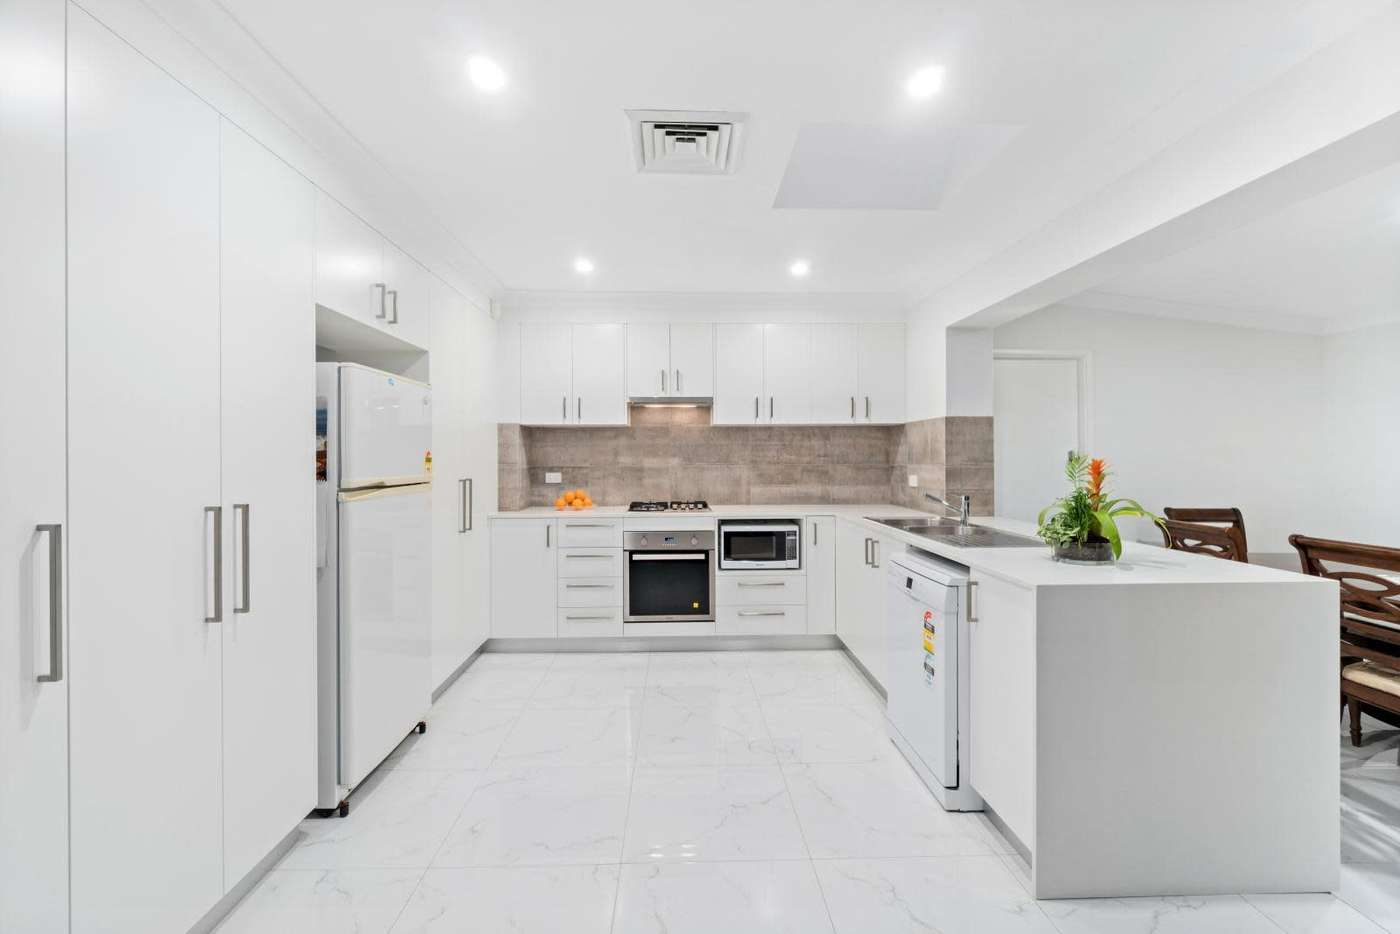 Main view of Homely house listing, 6 Begonia Avenue, Cabramatta NSW 2166